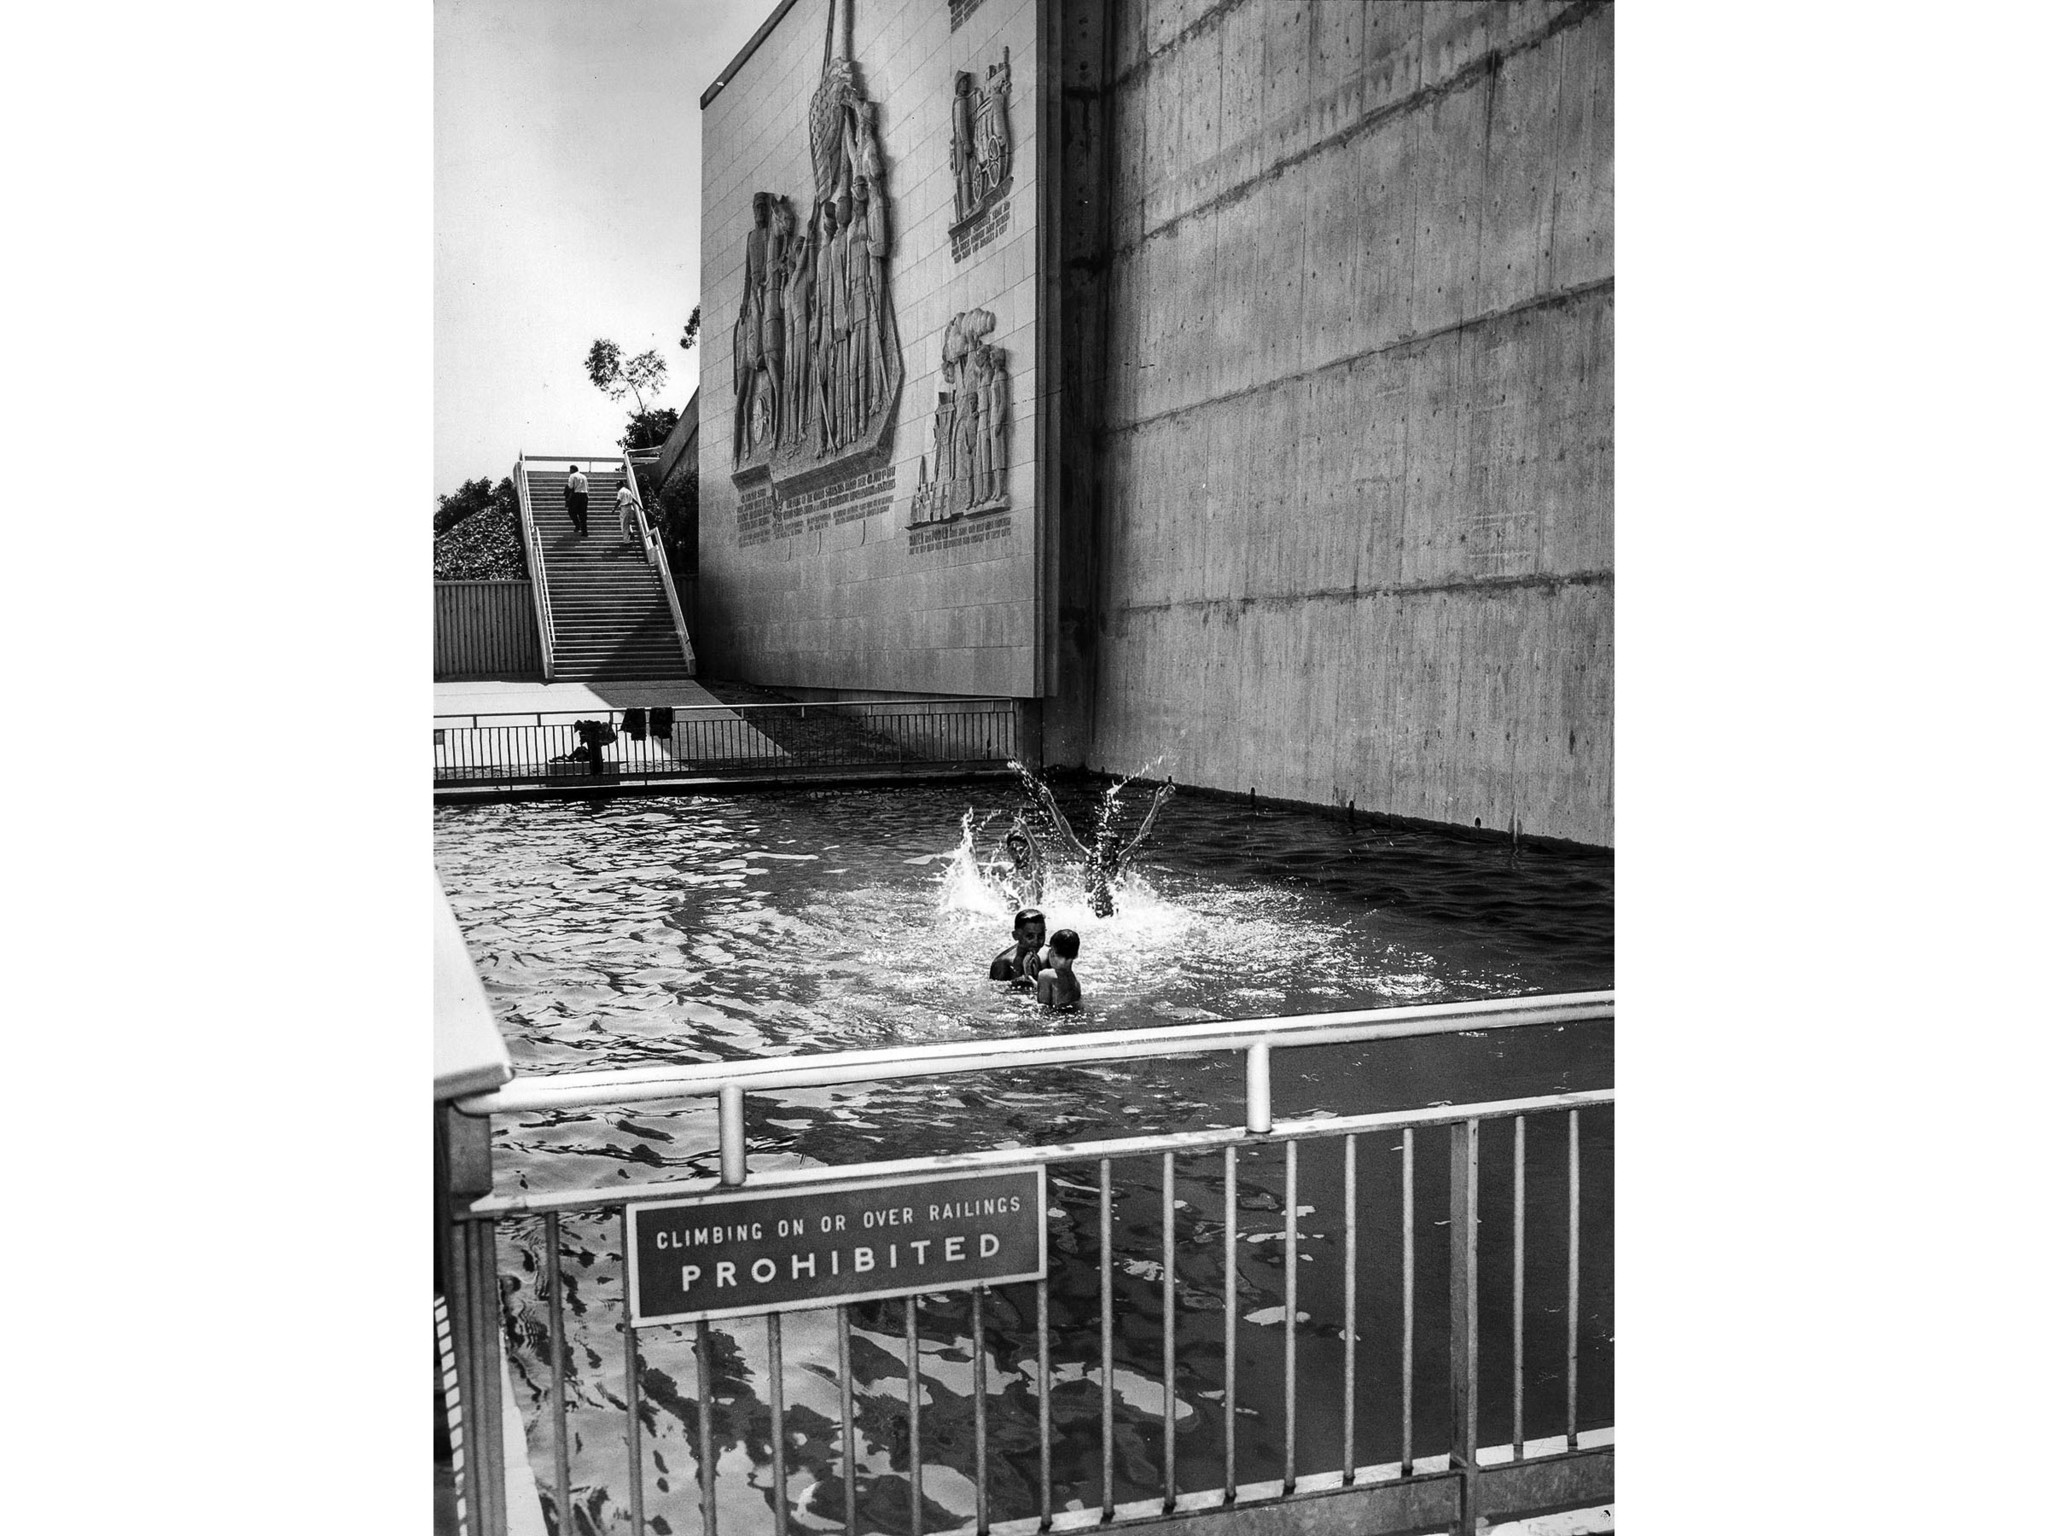 July 9, 1957: Four boys ignore sign prohibiting entering pool at base of Fr. Moore Memorial, and mer